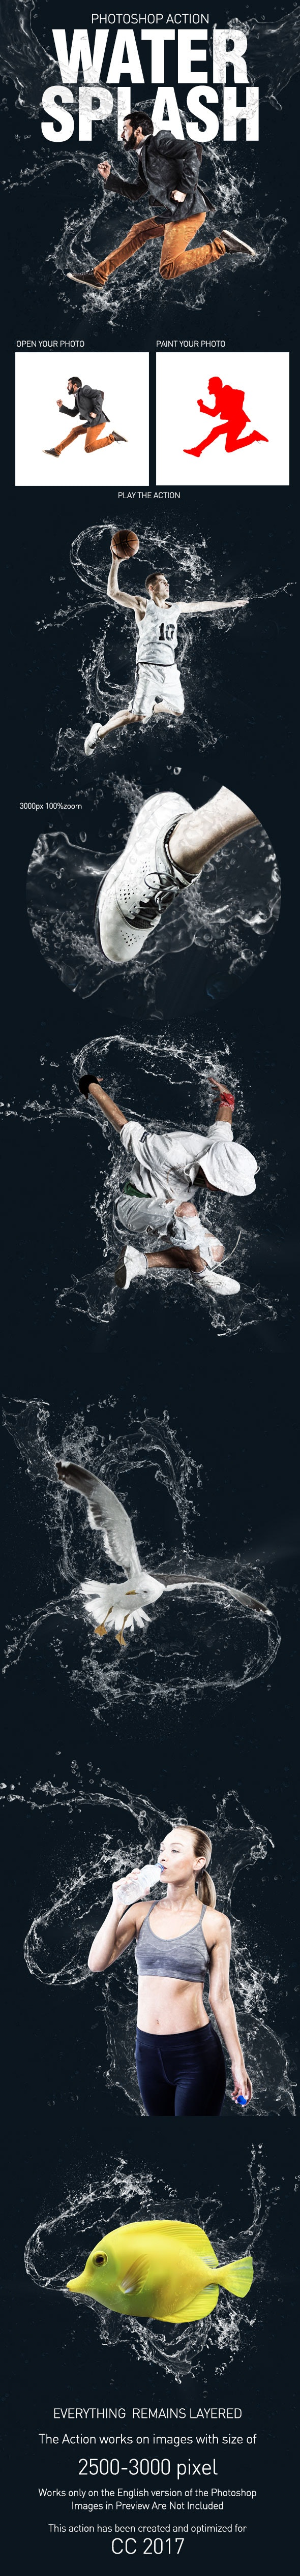 Water Splash Action - Photo Effects Actions